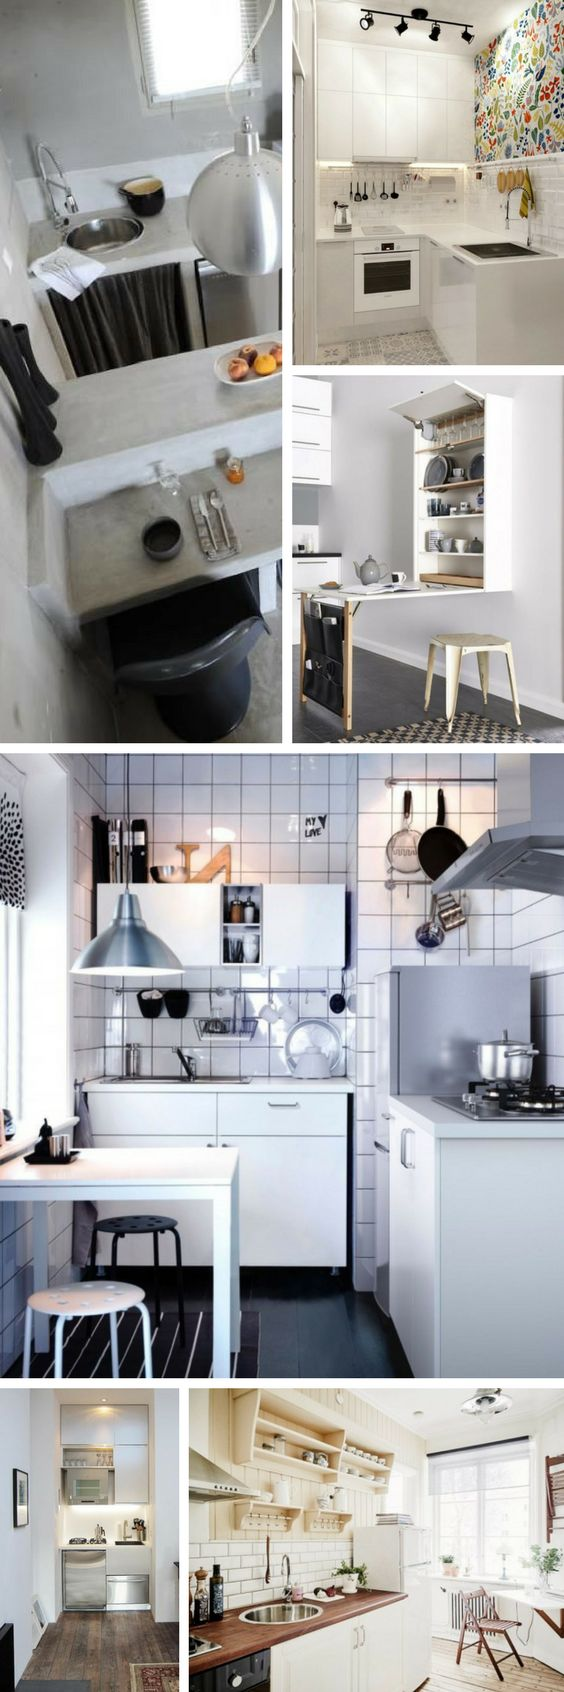 1418 best cuisine images on pinterest | custom kitchens, gray and